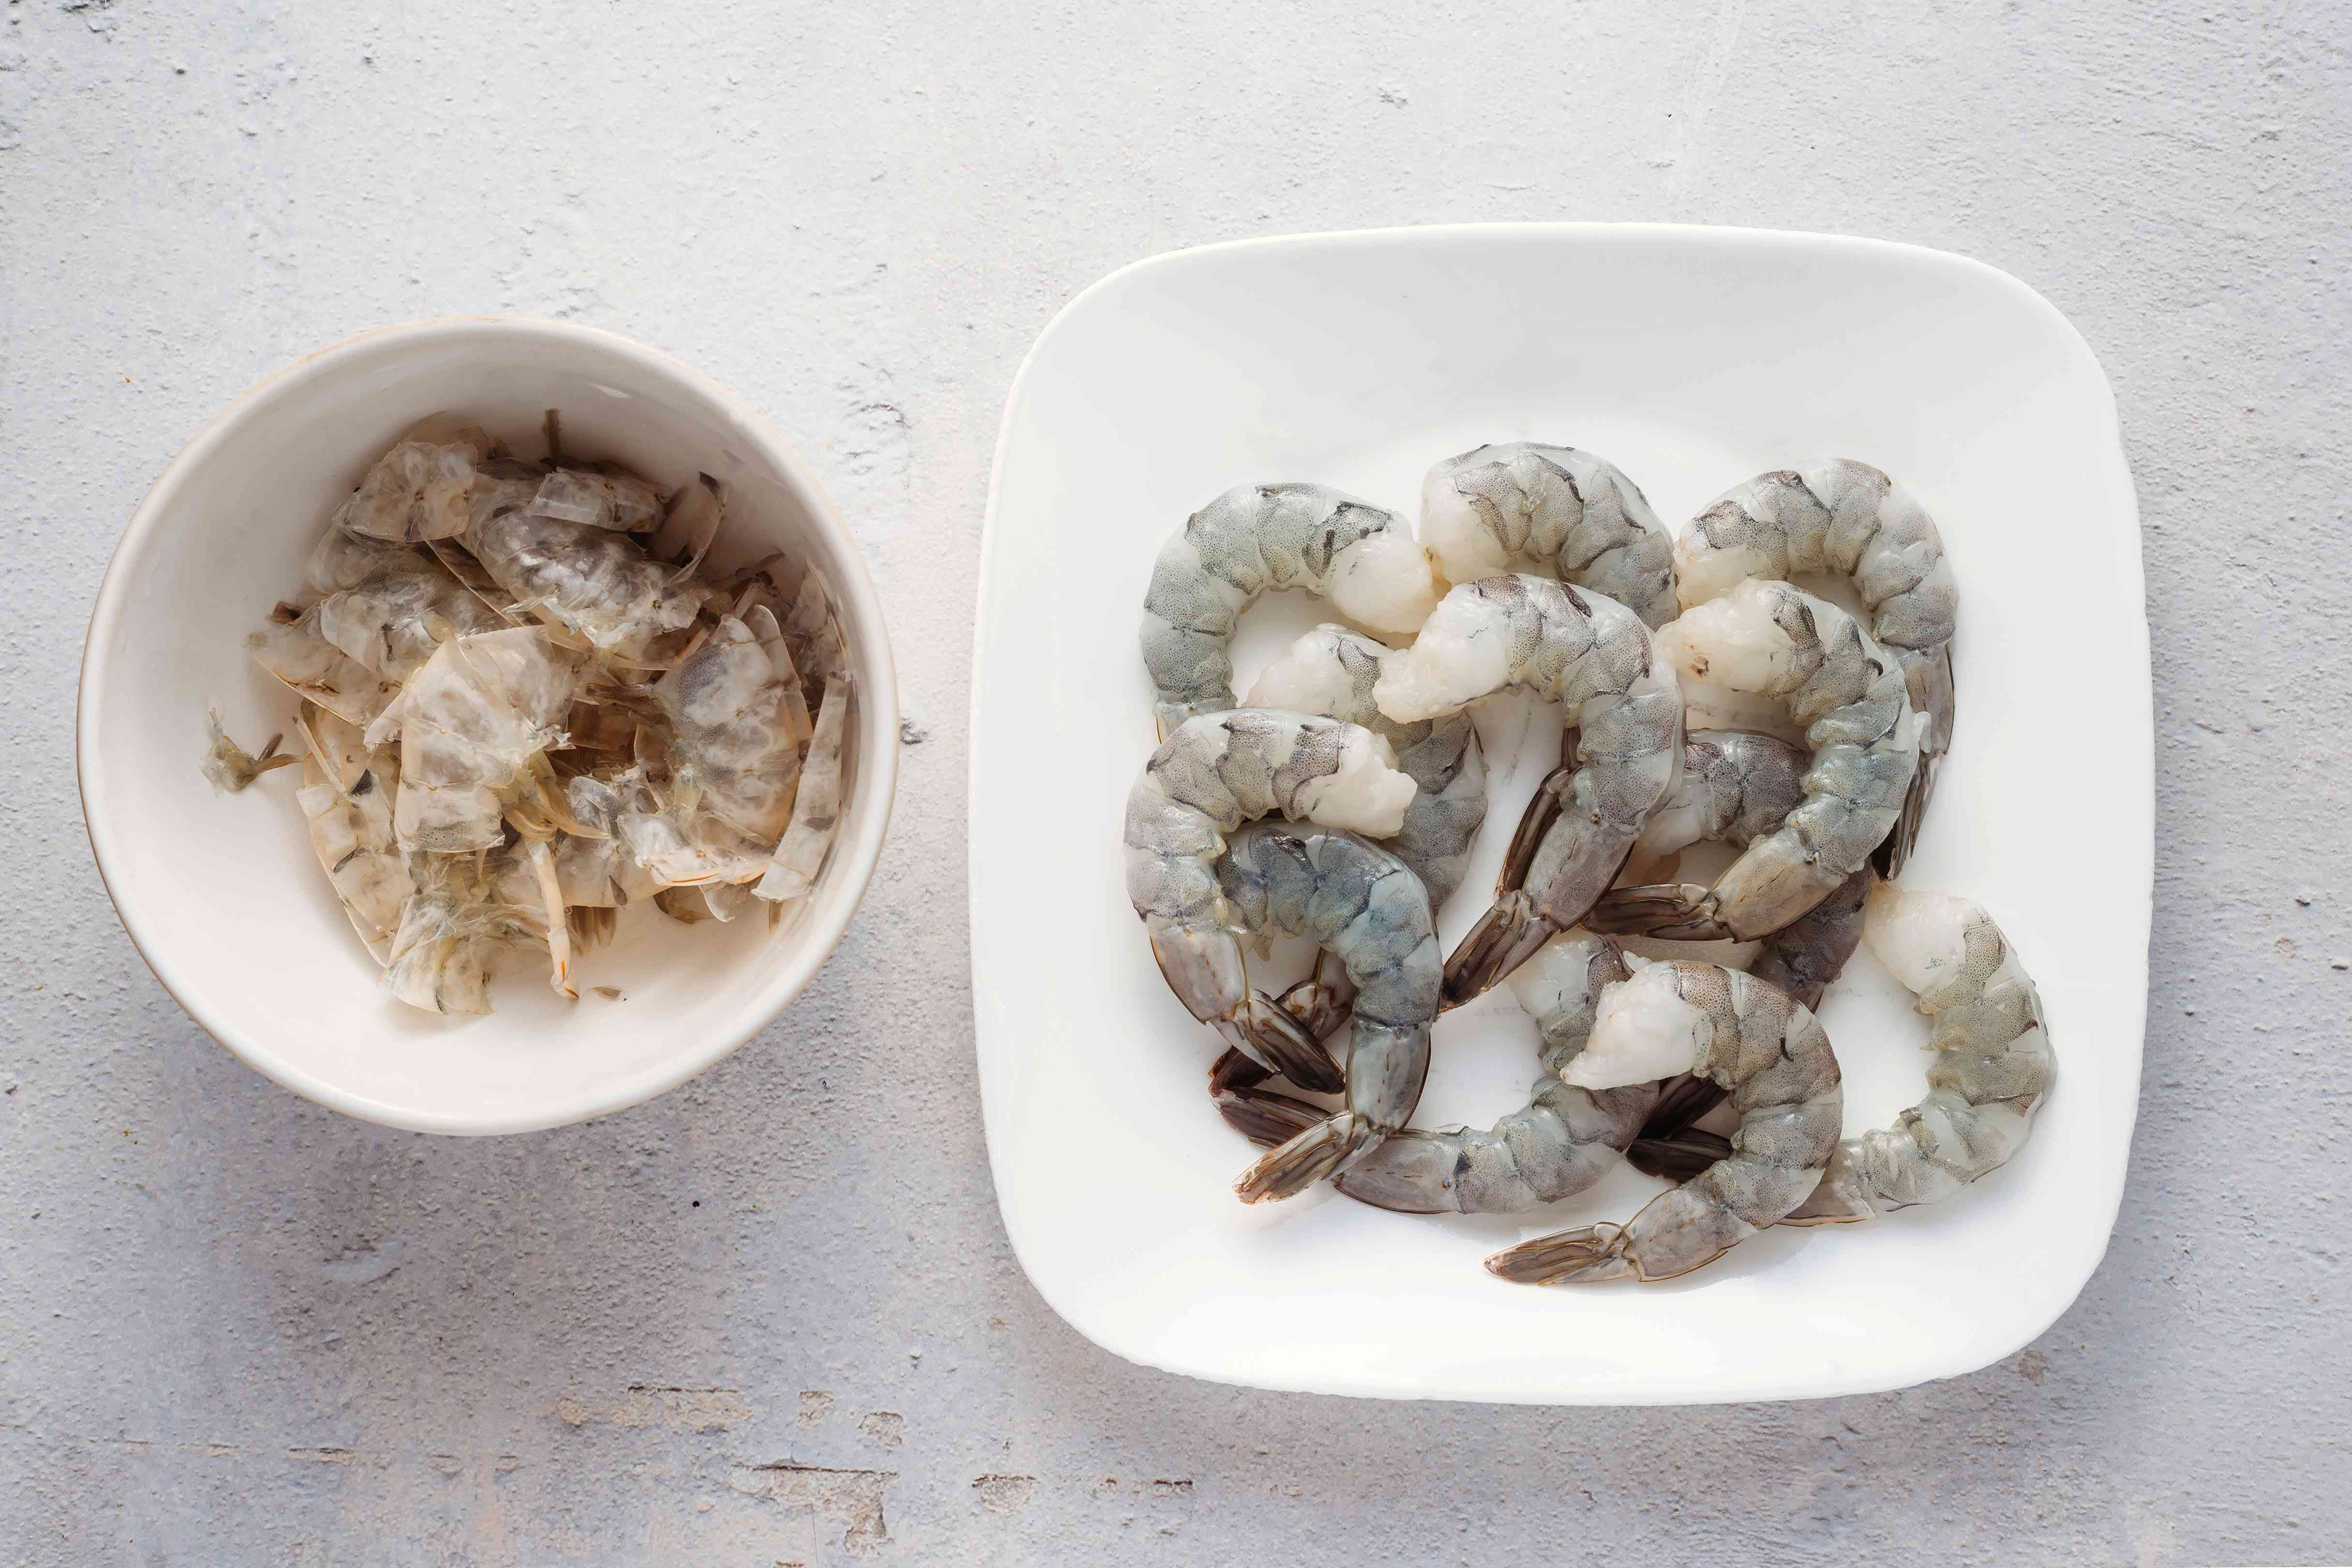 shrimp with shells removed in a bowl, shrimp shells in a bowl